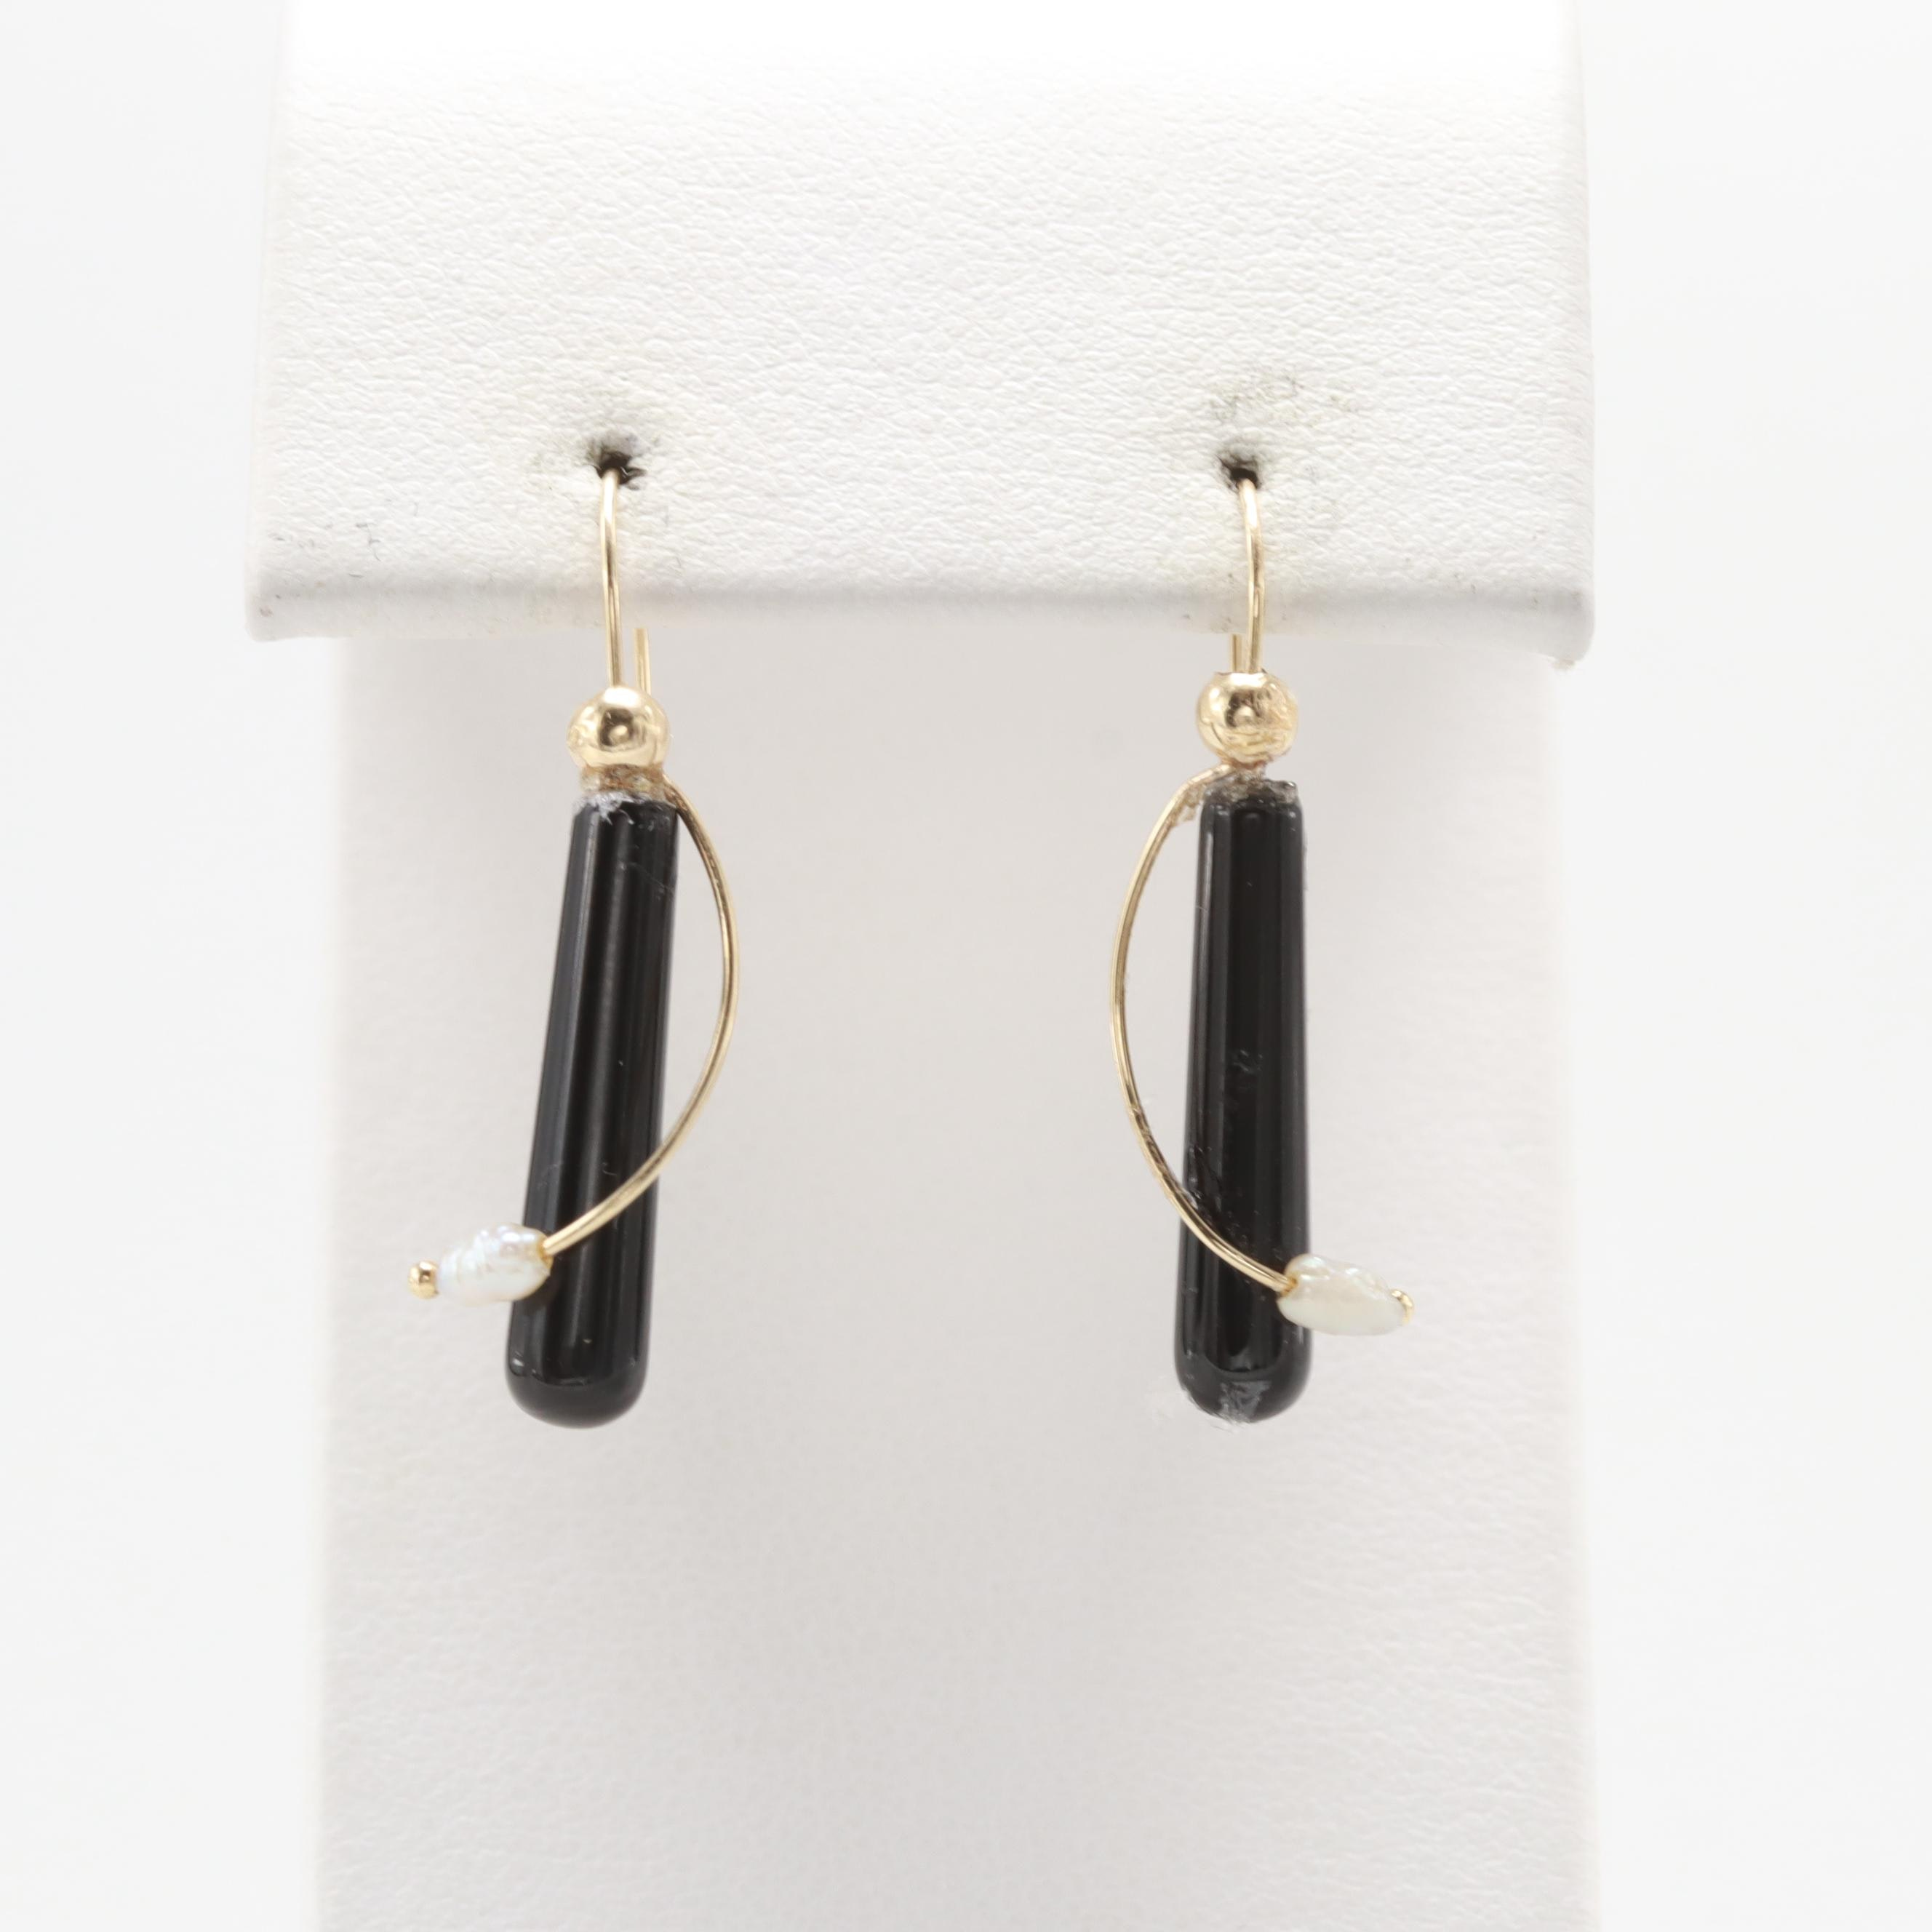 14K Yellow Gold Black Onyx and Cultured Pearl Earrings